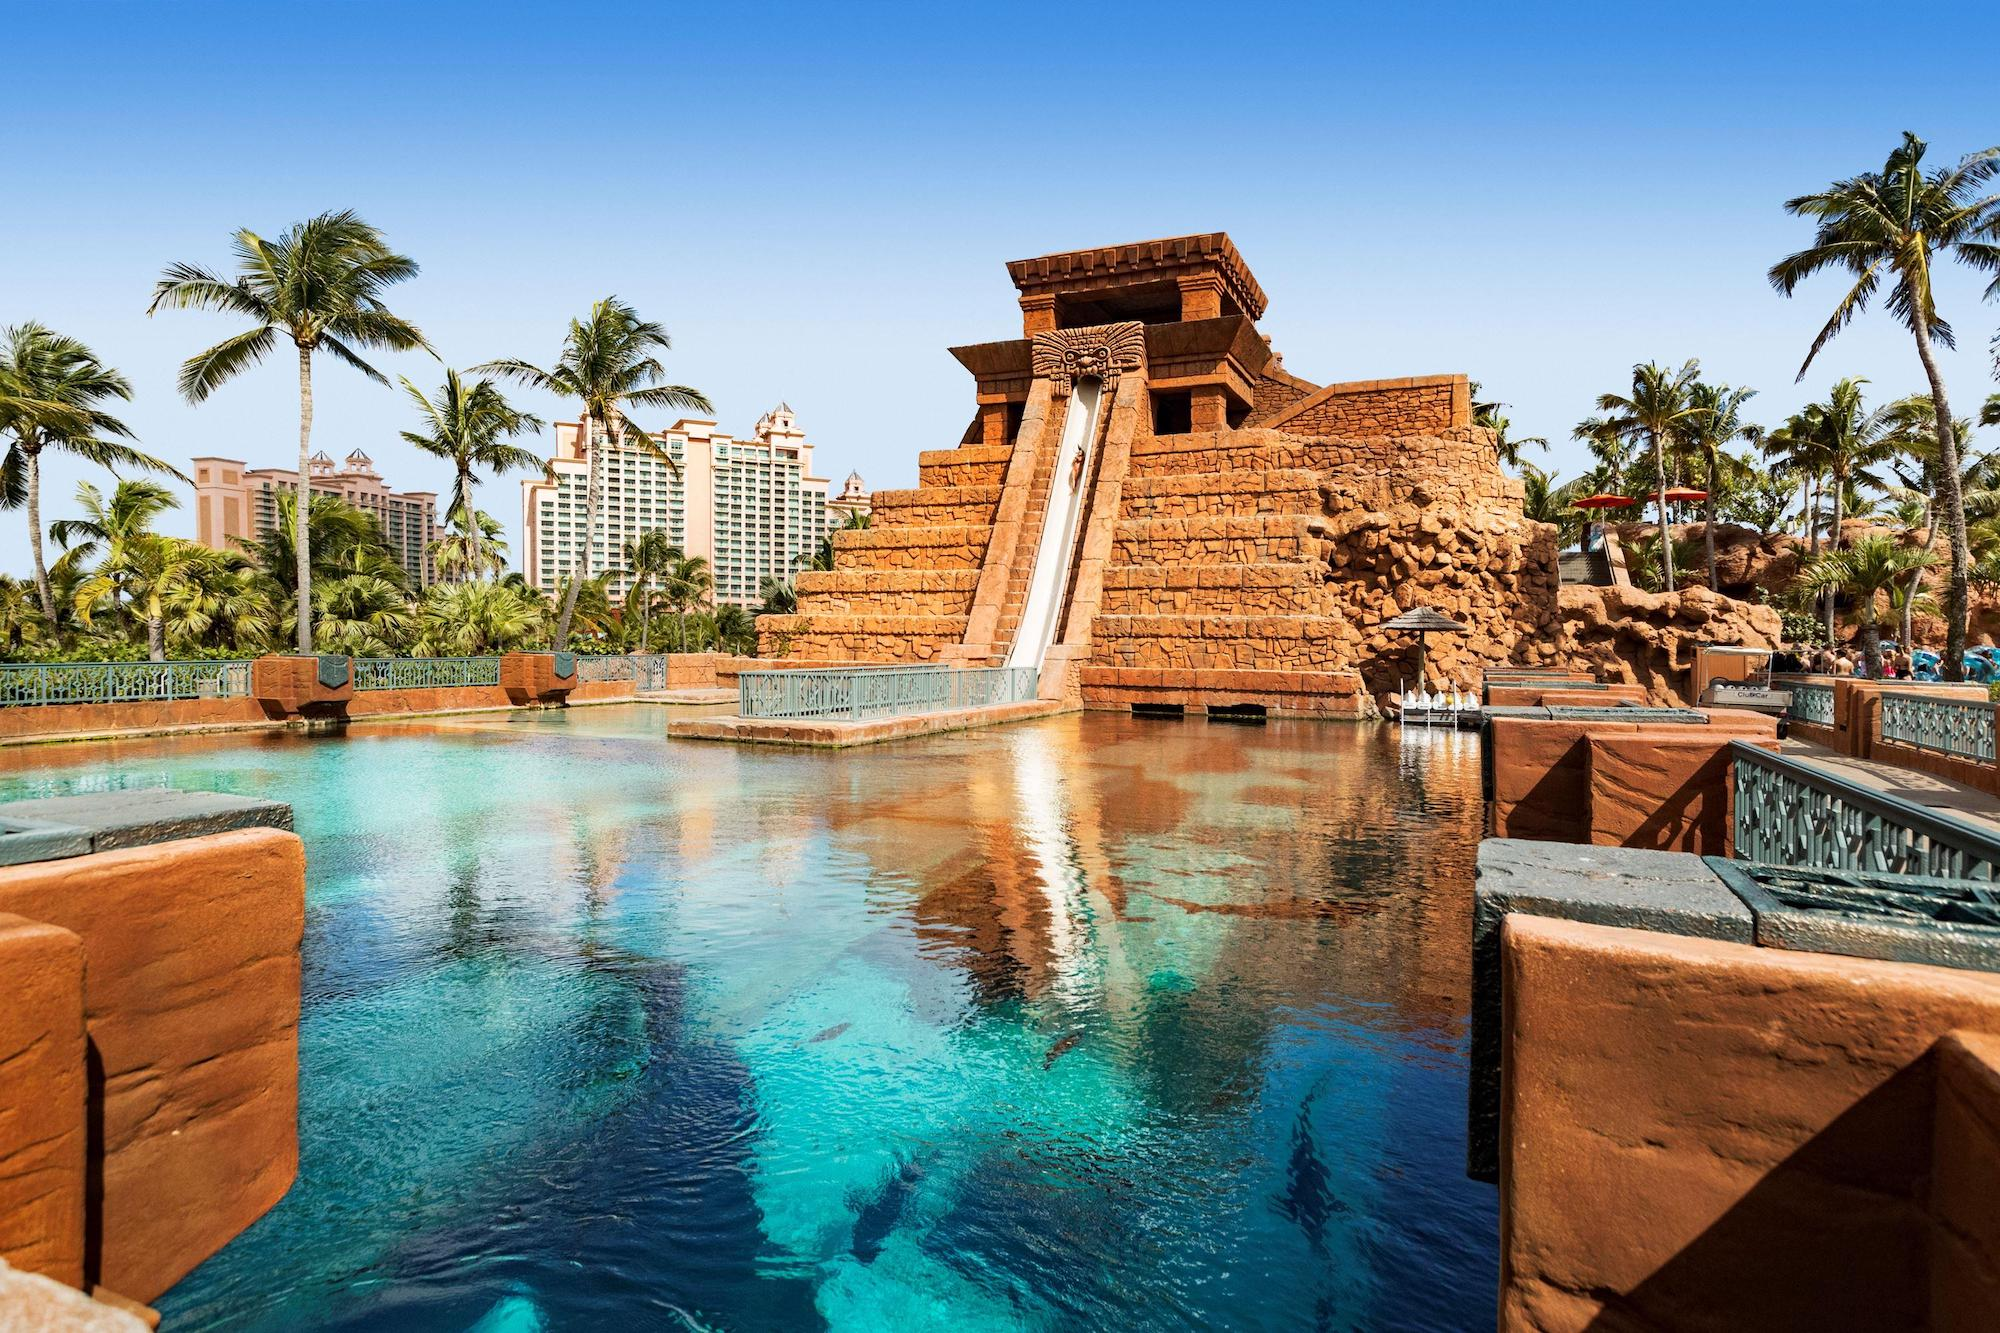 Mayan Temple Leap of Faith, Atlantis, The Palm, Dubai